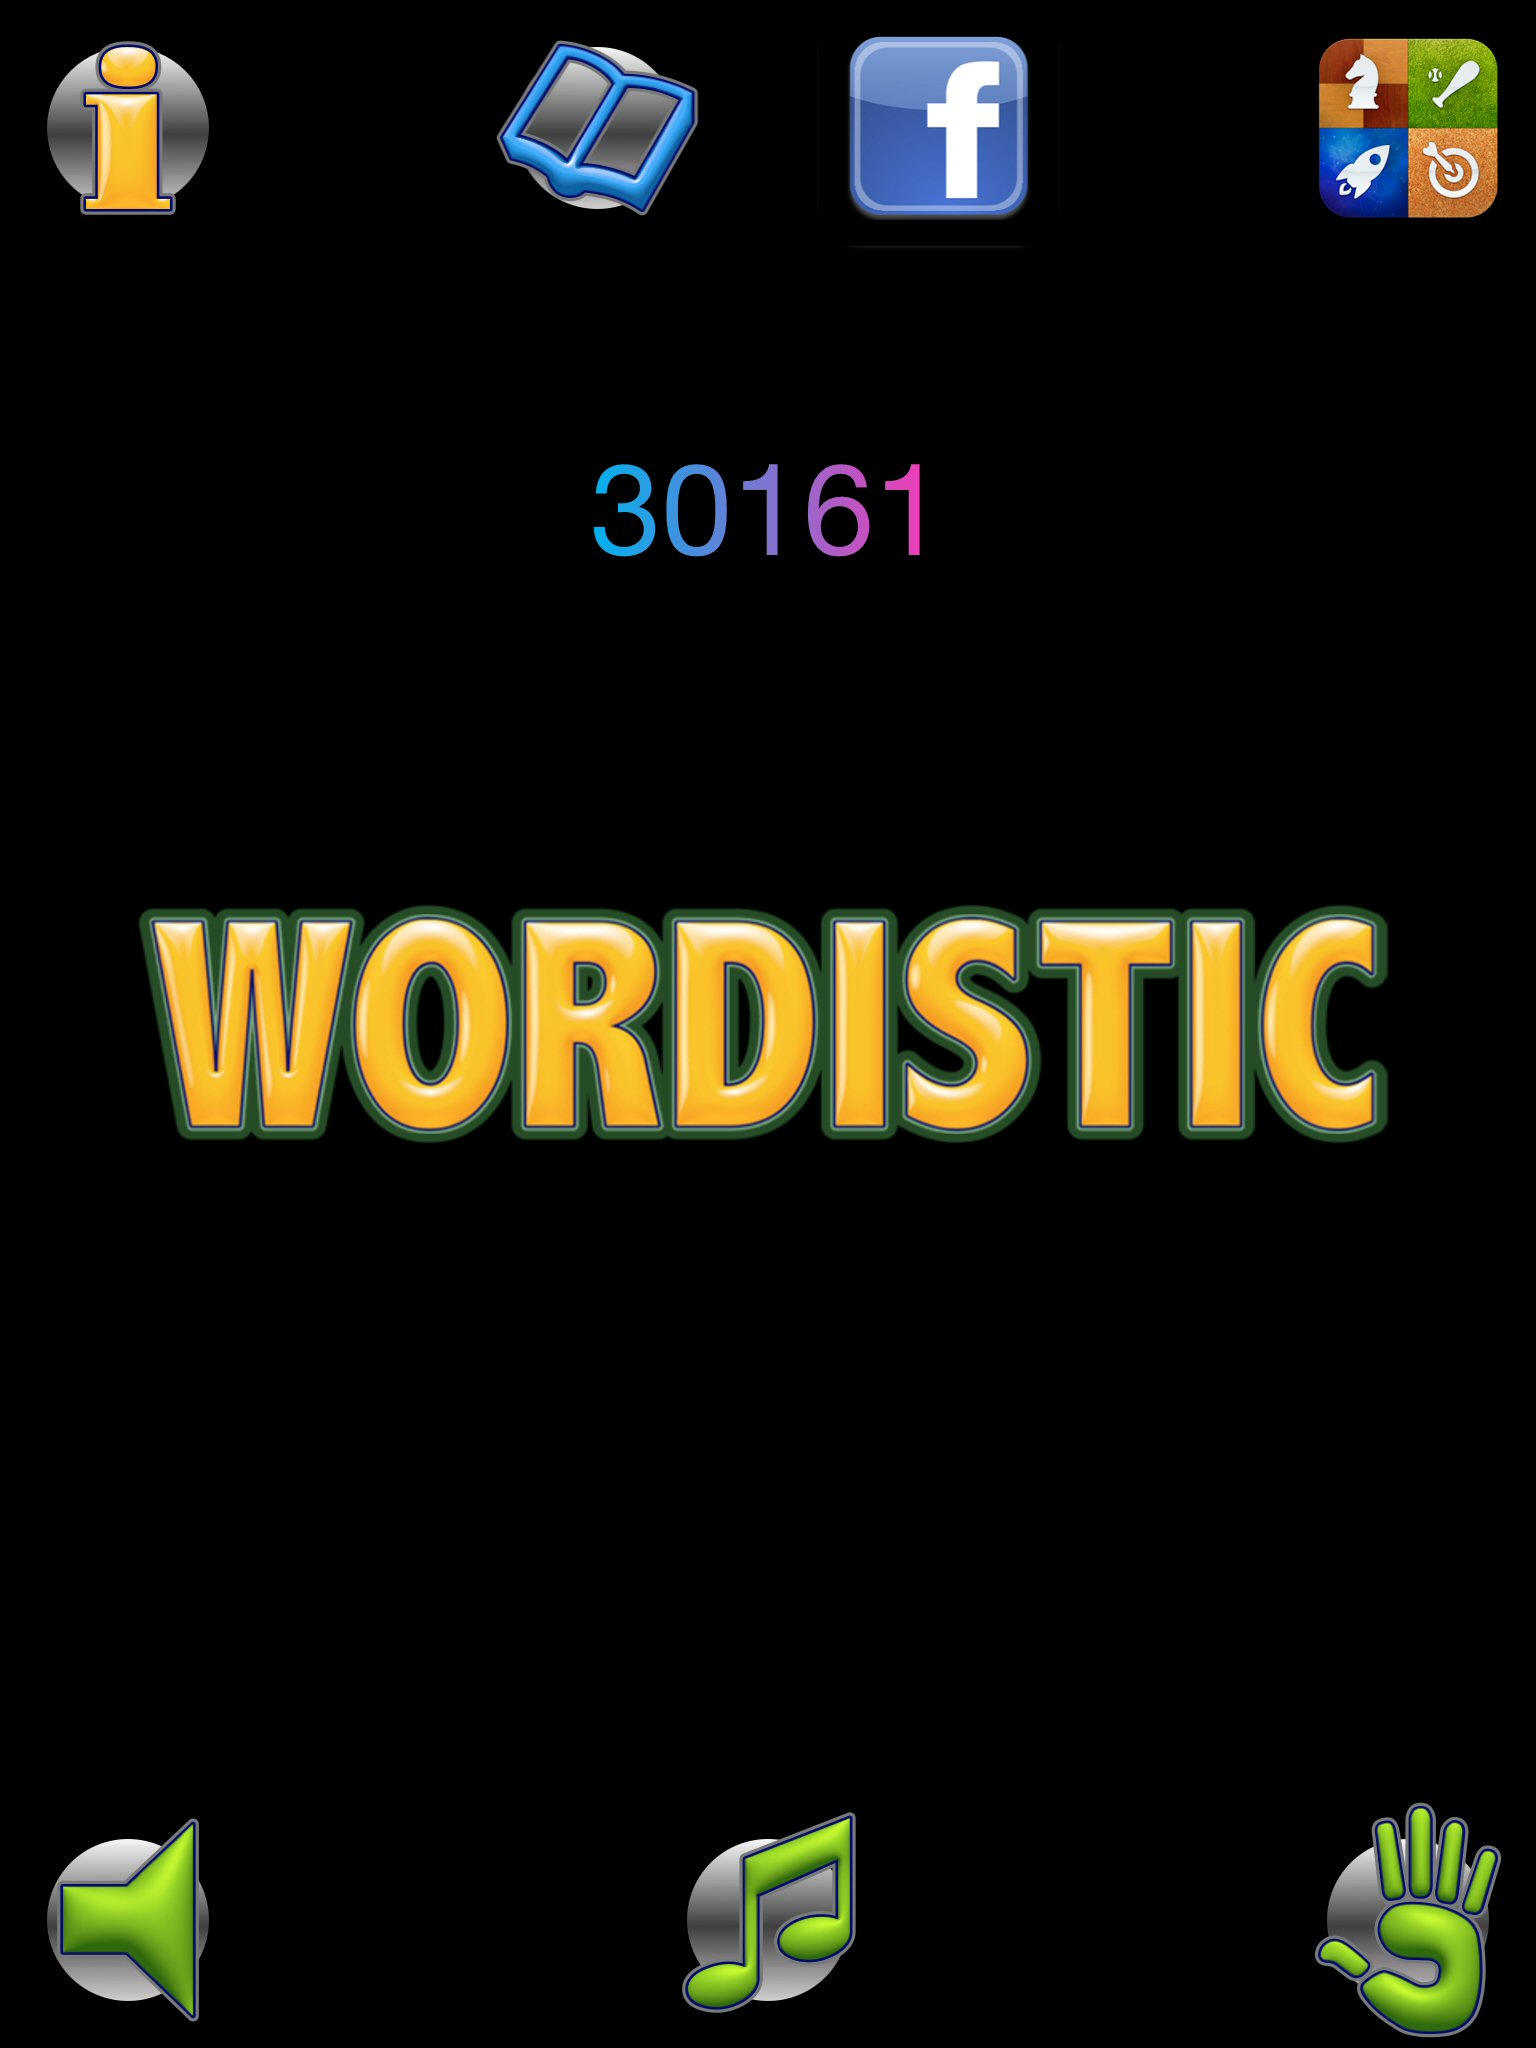 18900 Screenshot 2012.04.30 16.11.19 Wordistic by Mush Dev Studio